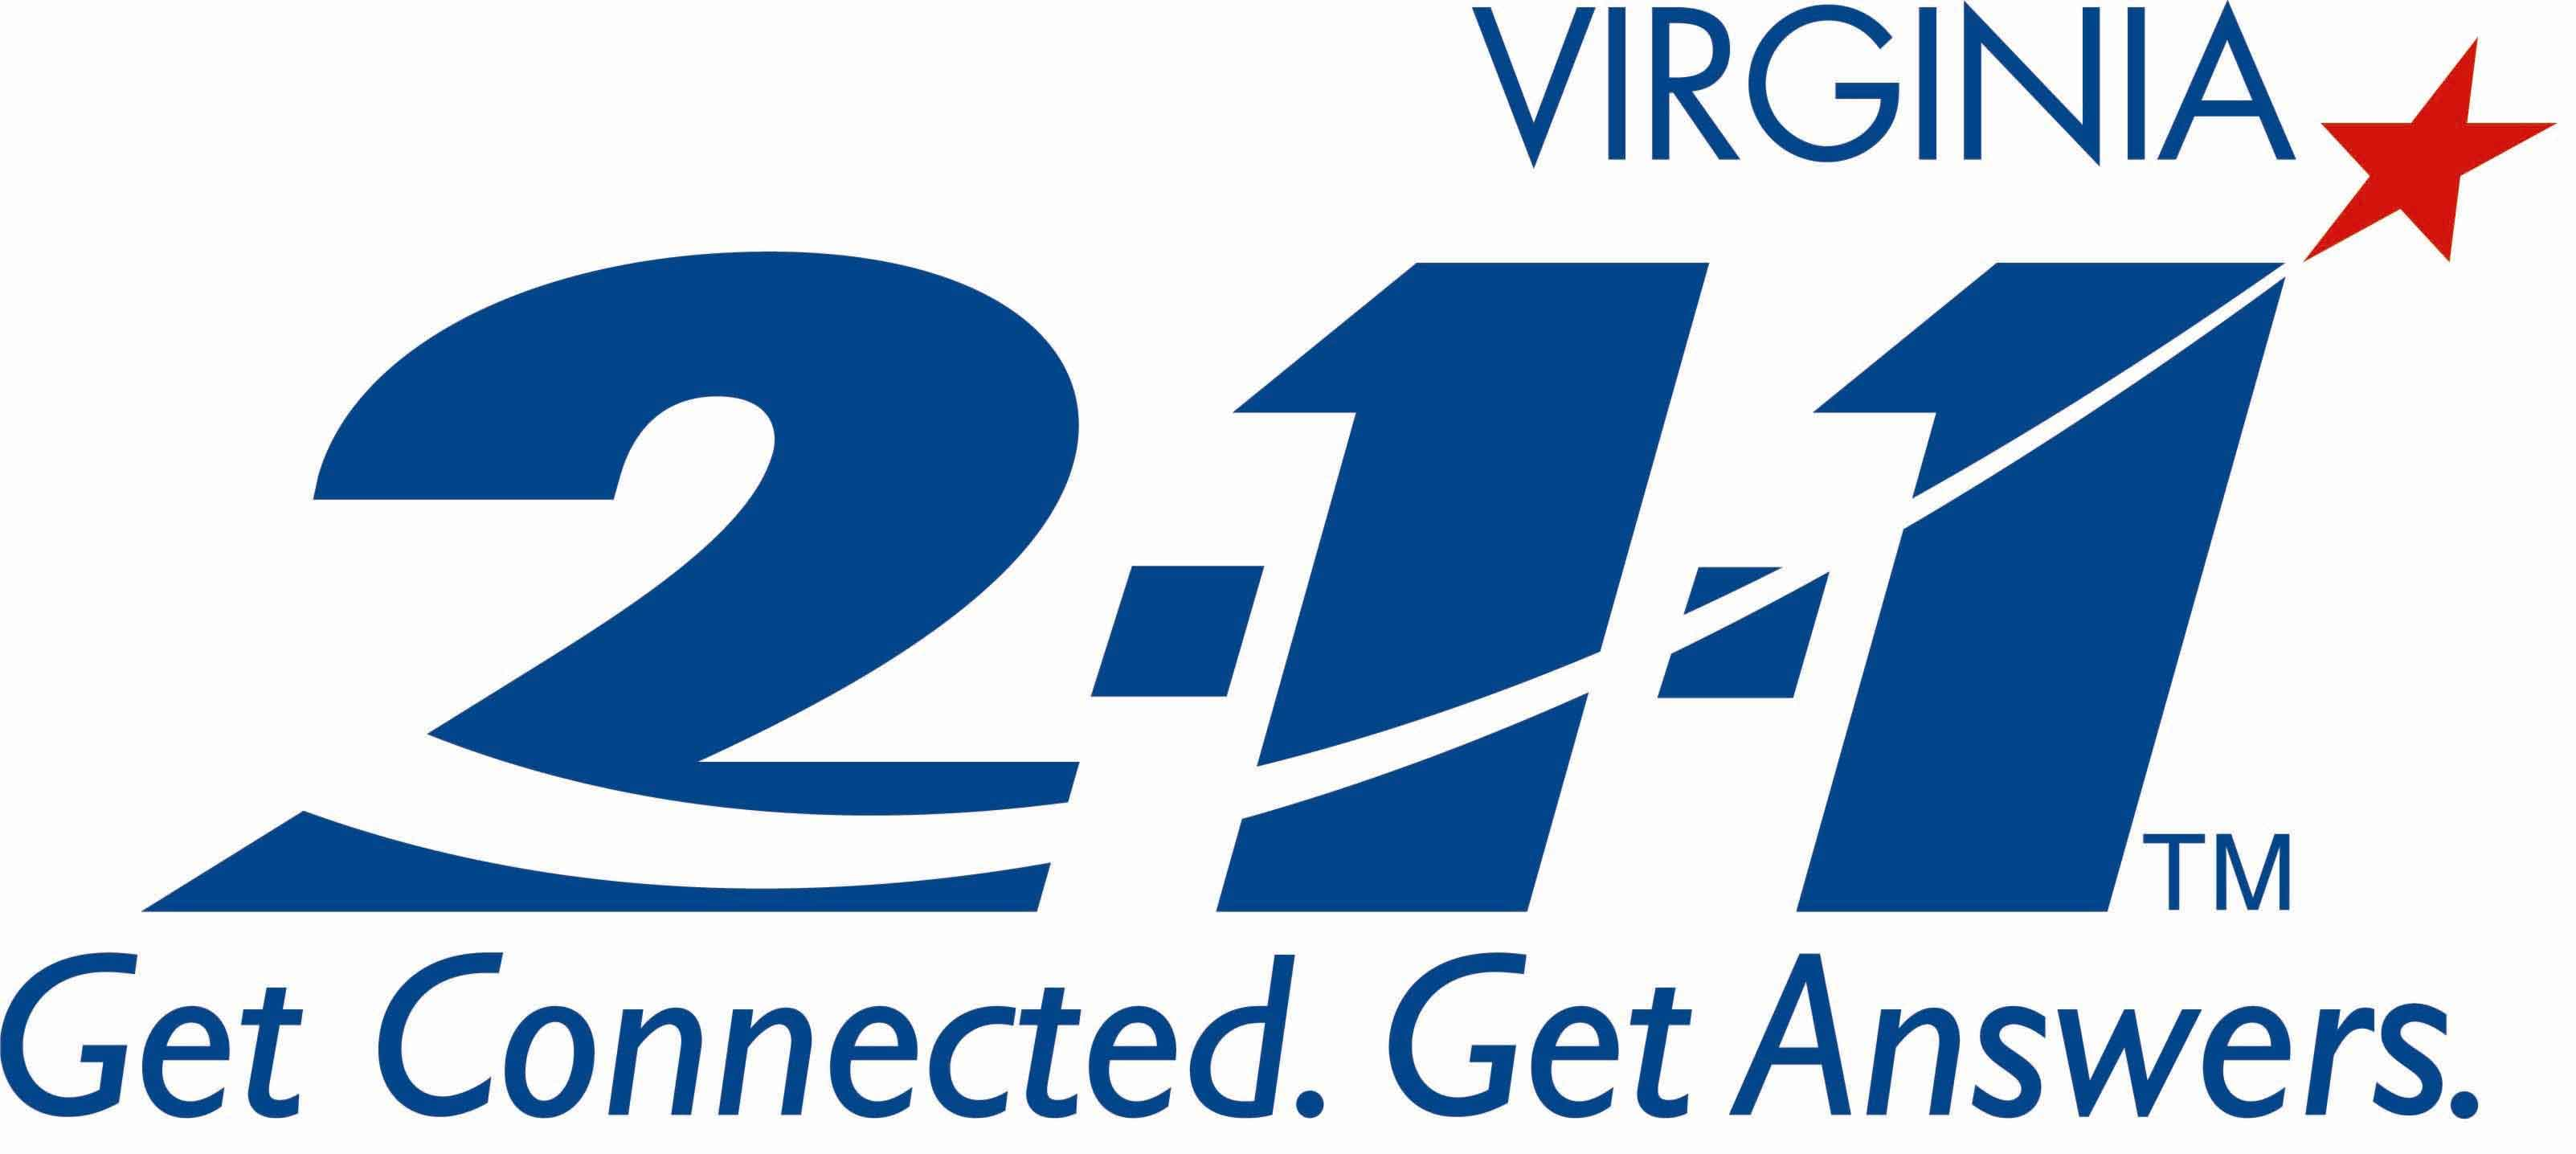 Virginia 211 Get Connected Get Answers Opens in new window